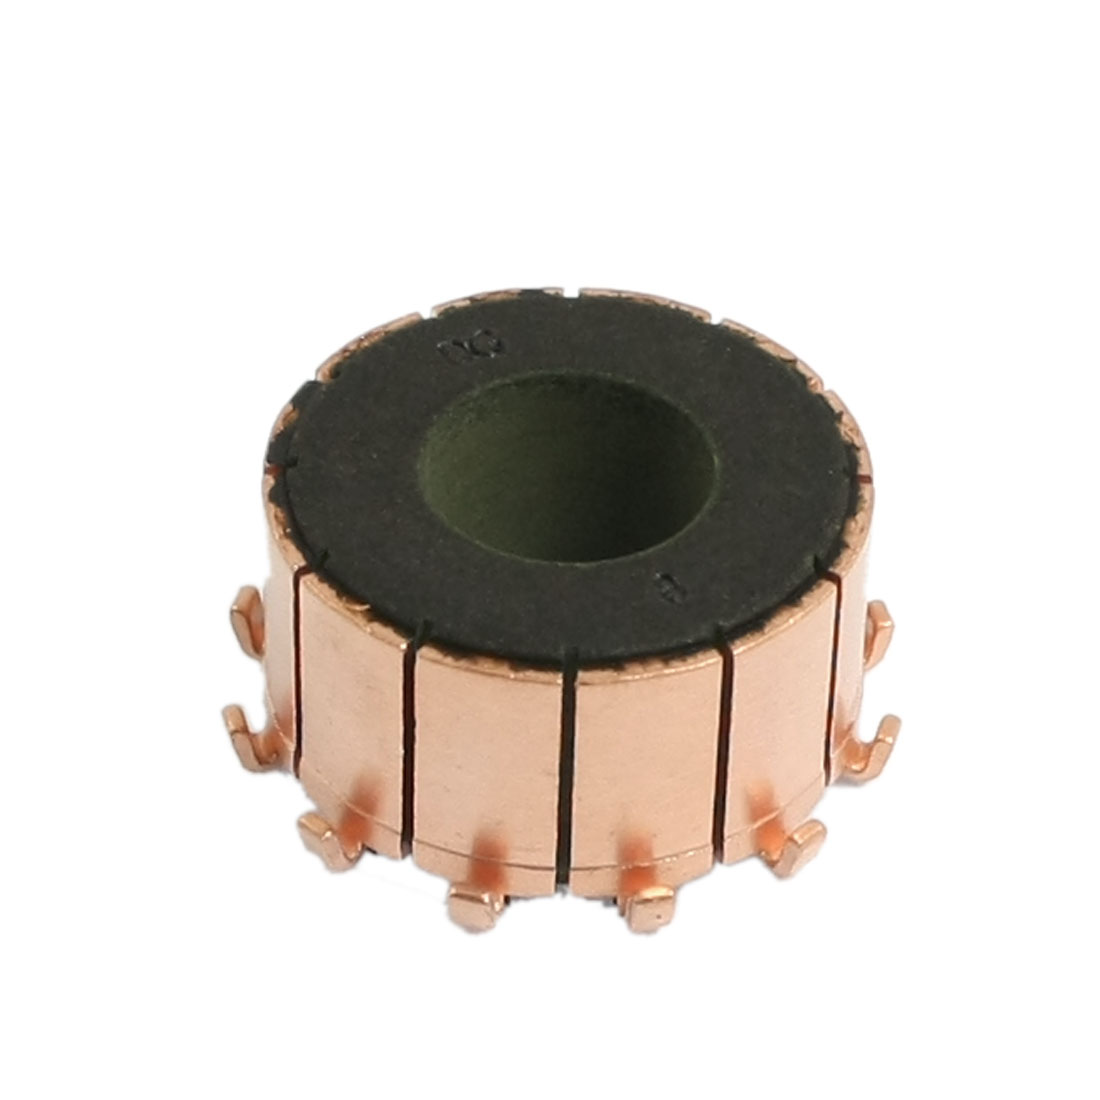 10mm Shaft Dimeter 12mm Height Copper Shell Mounted On Armature Commutator